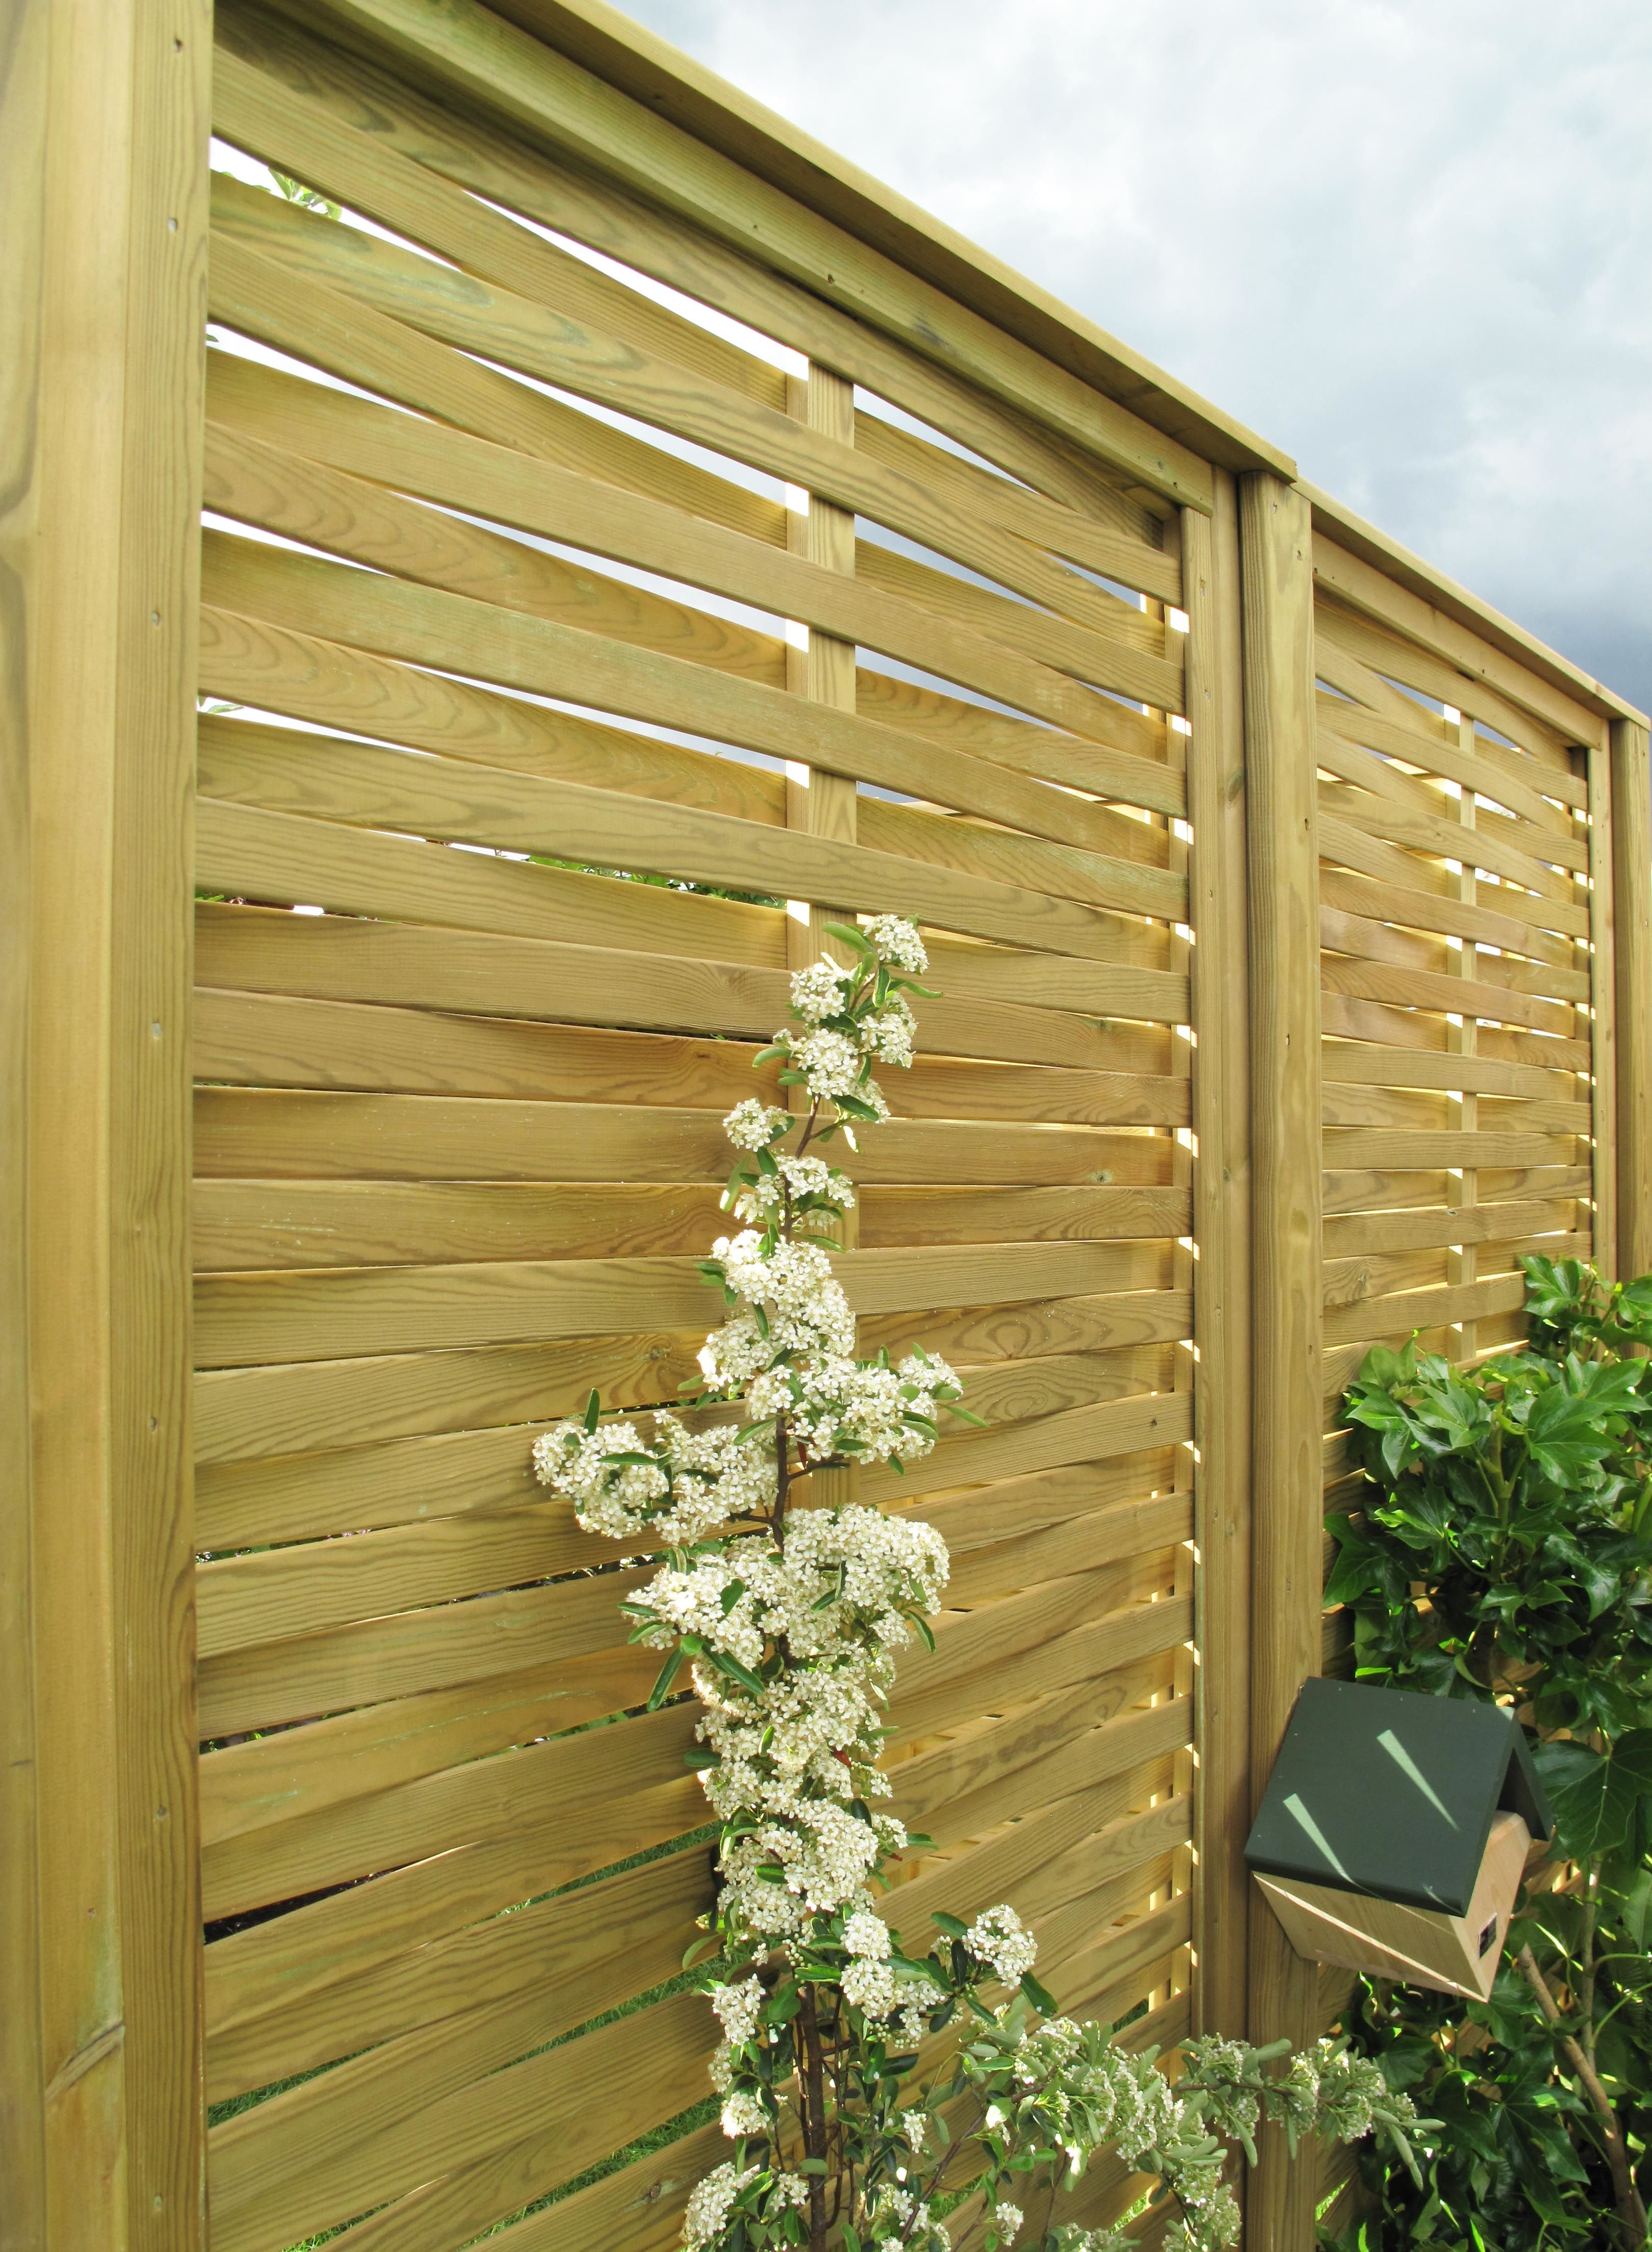 The woven fence panel may look like an old style inter